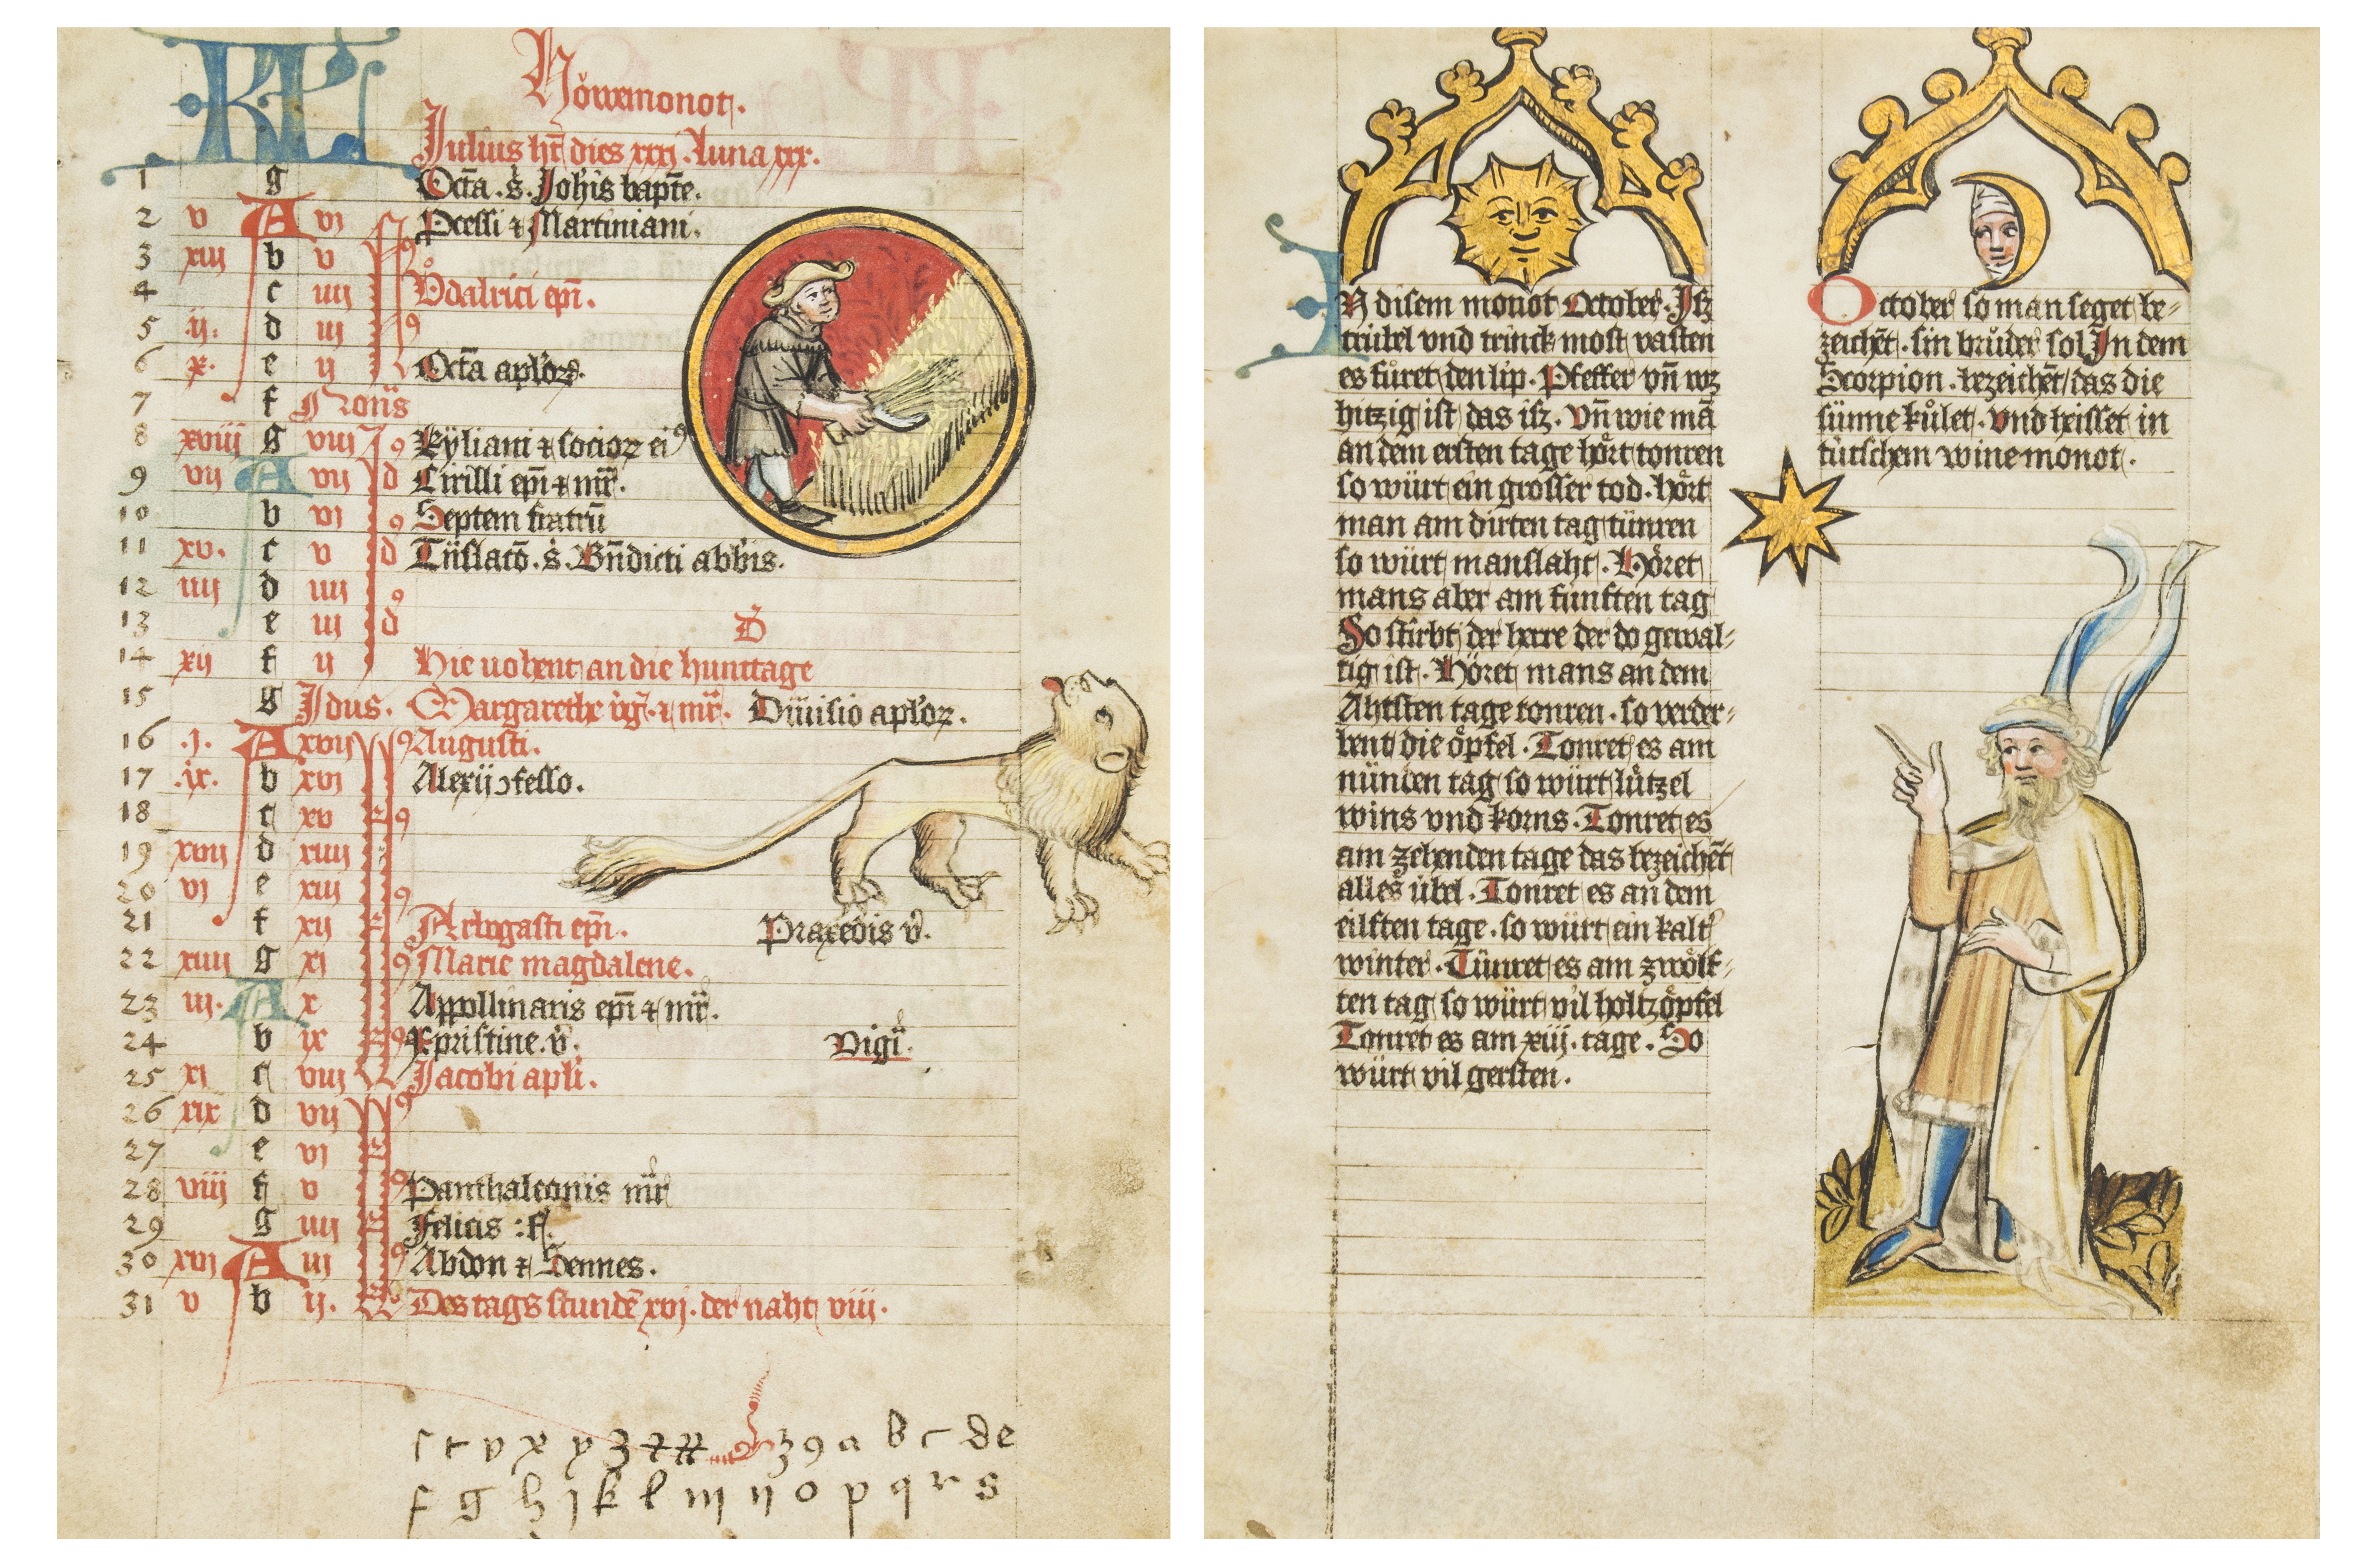 The Mckell Medical Almanack in German, illuminated manuscript on parchment, Alsace, circa 1445, 12 leaves. Estimate: £60,000–£80,000. Bloomsbury Auctions images